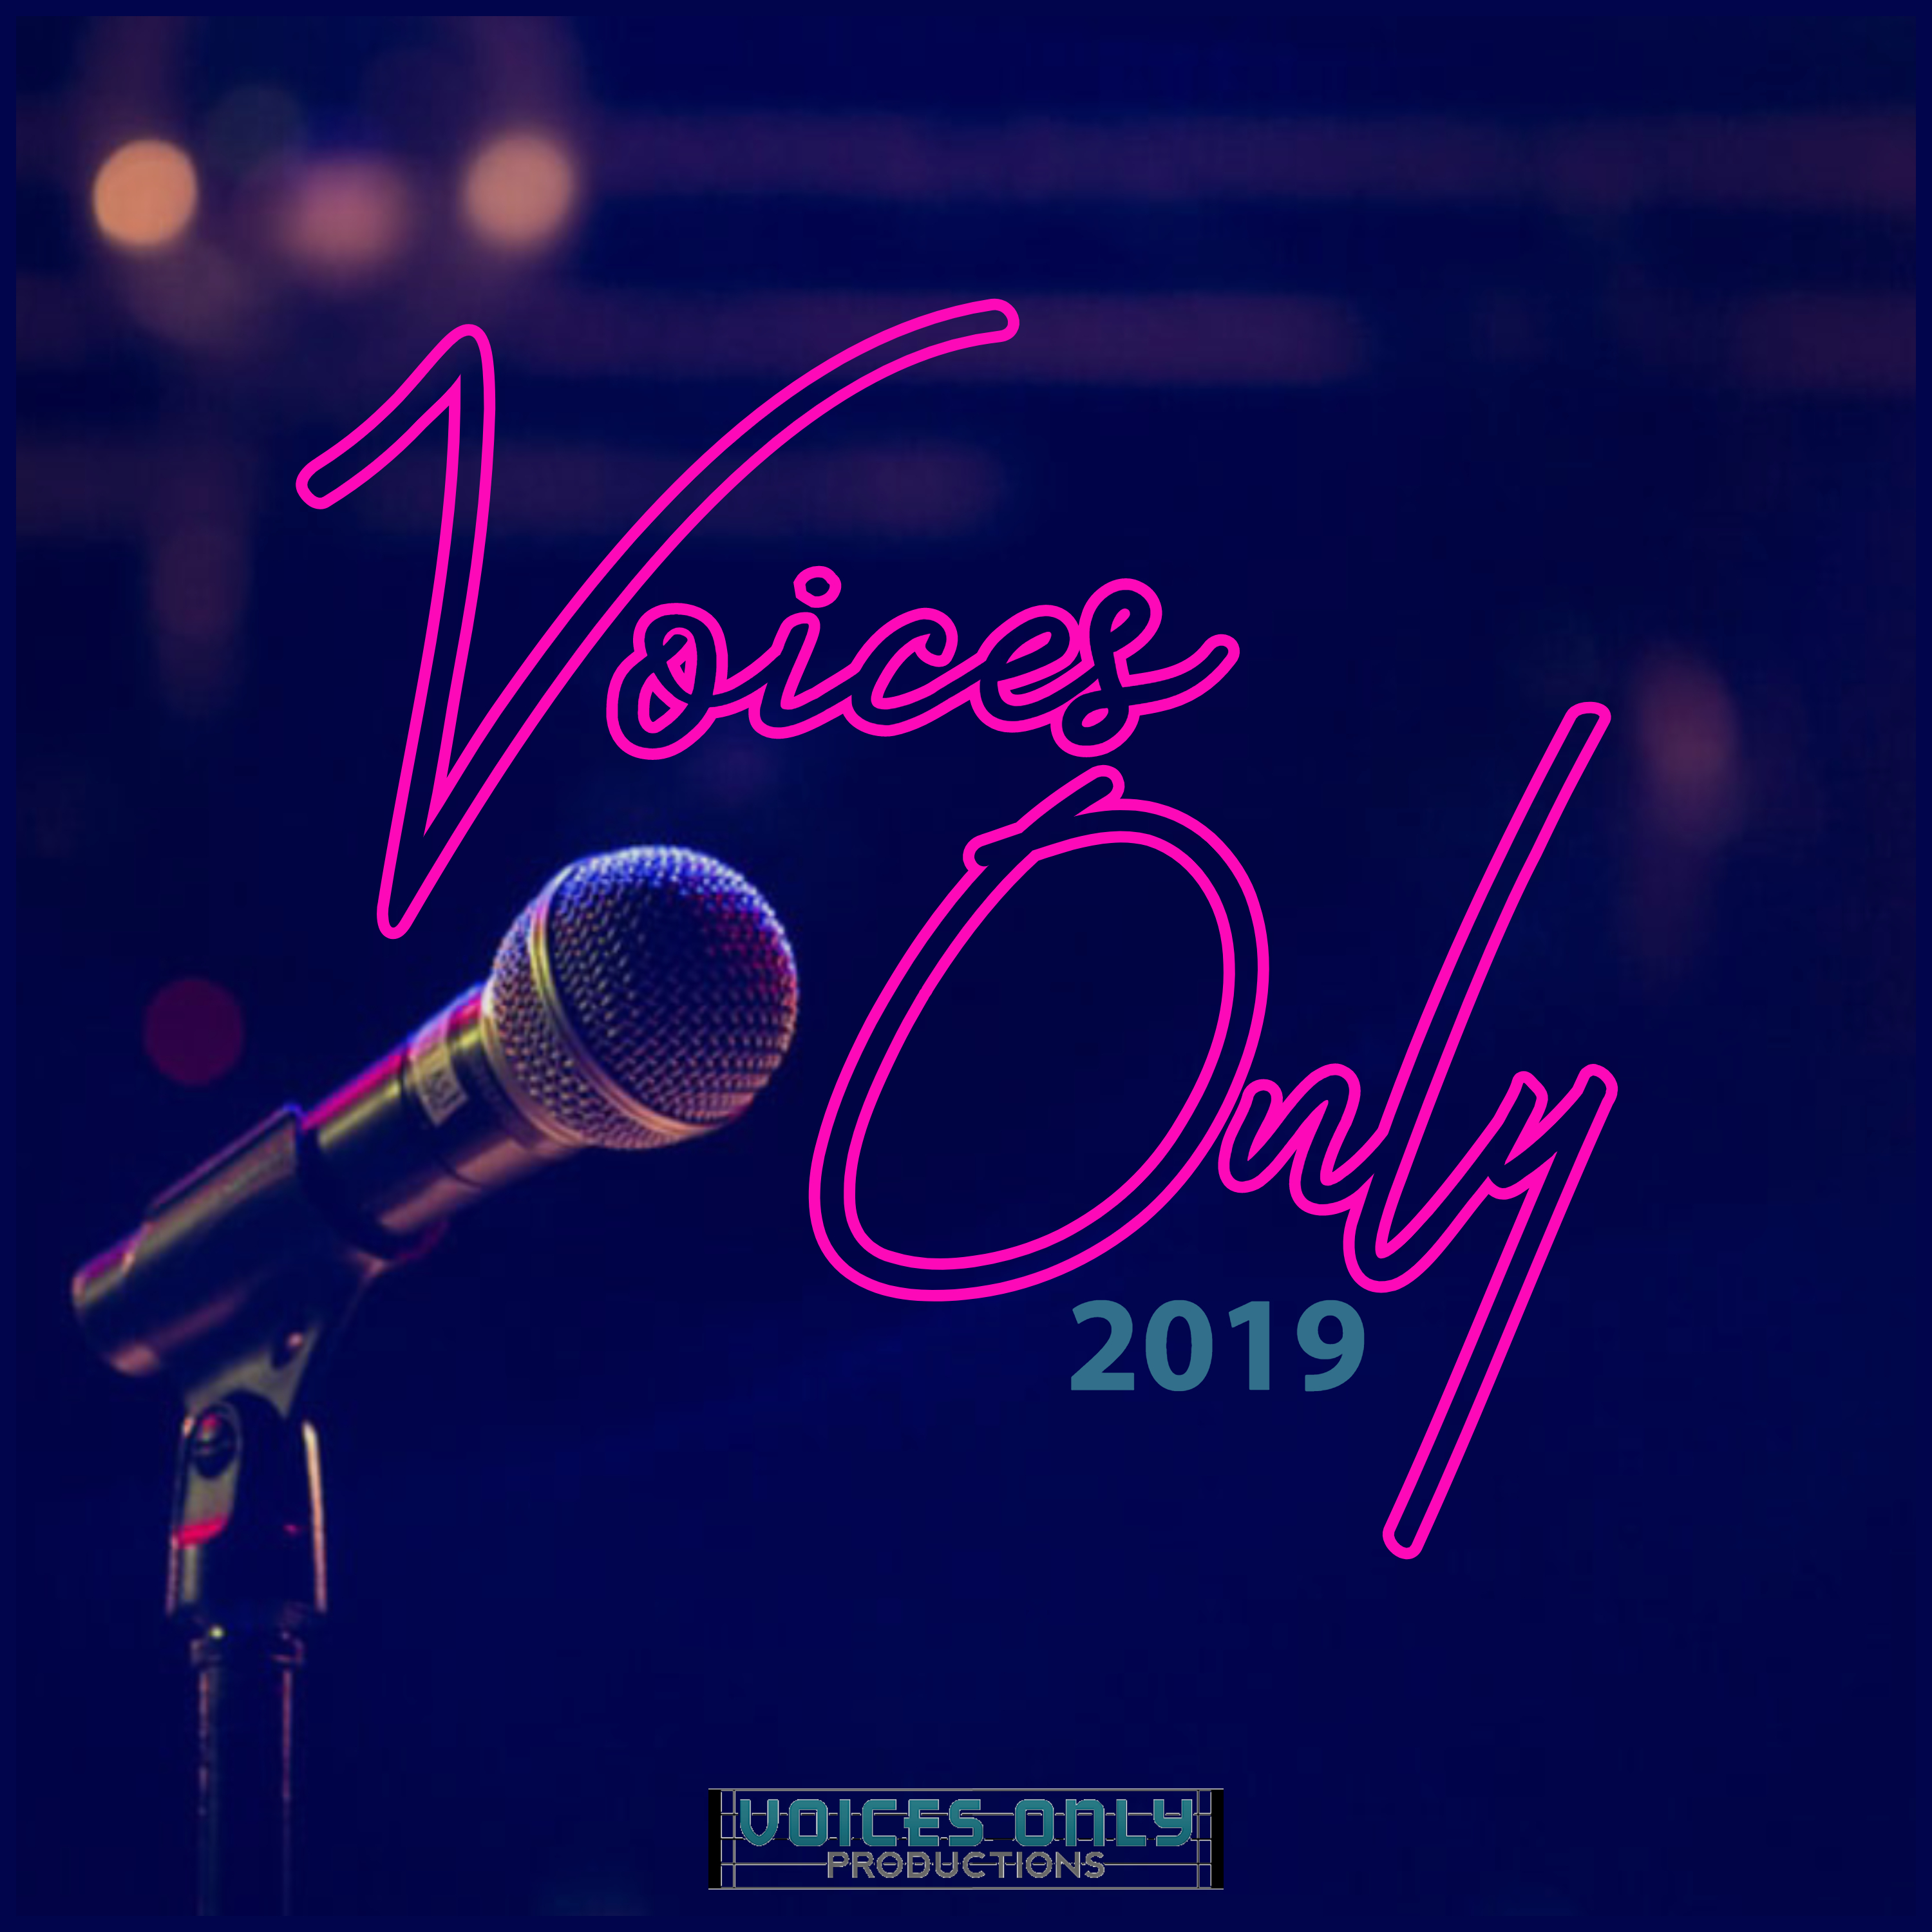 Download Voices Only 2019 now